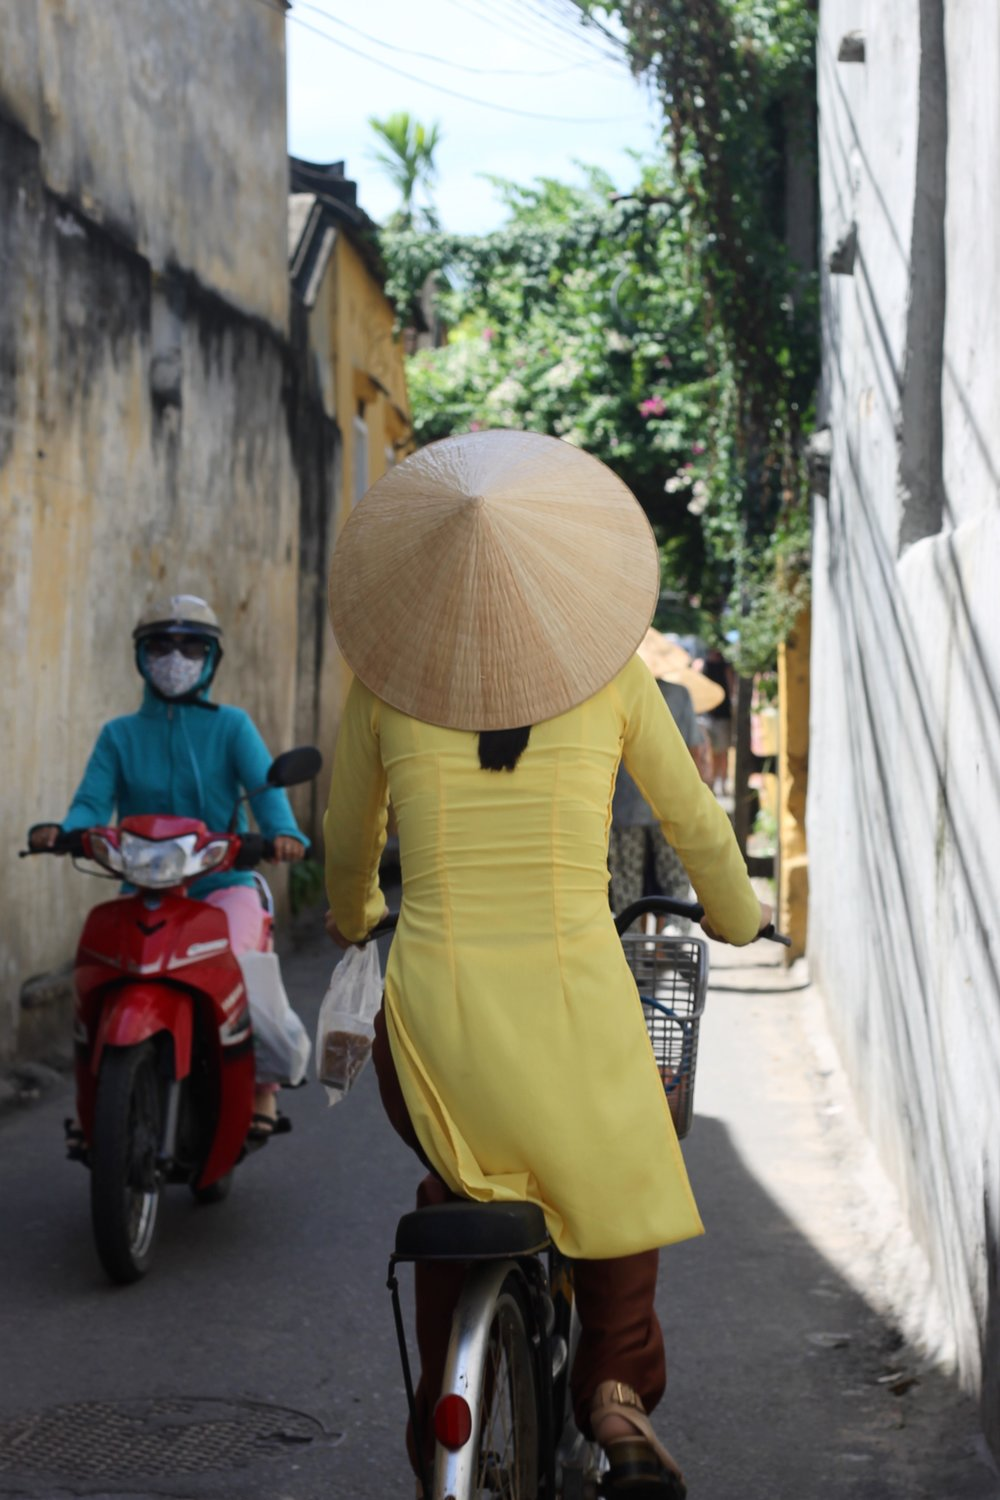 A woman wears a traditional conical hat and Vietnamese áo dài dress in Hoi An.